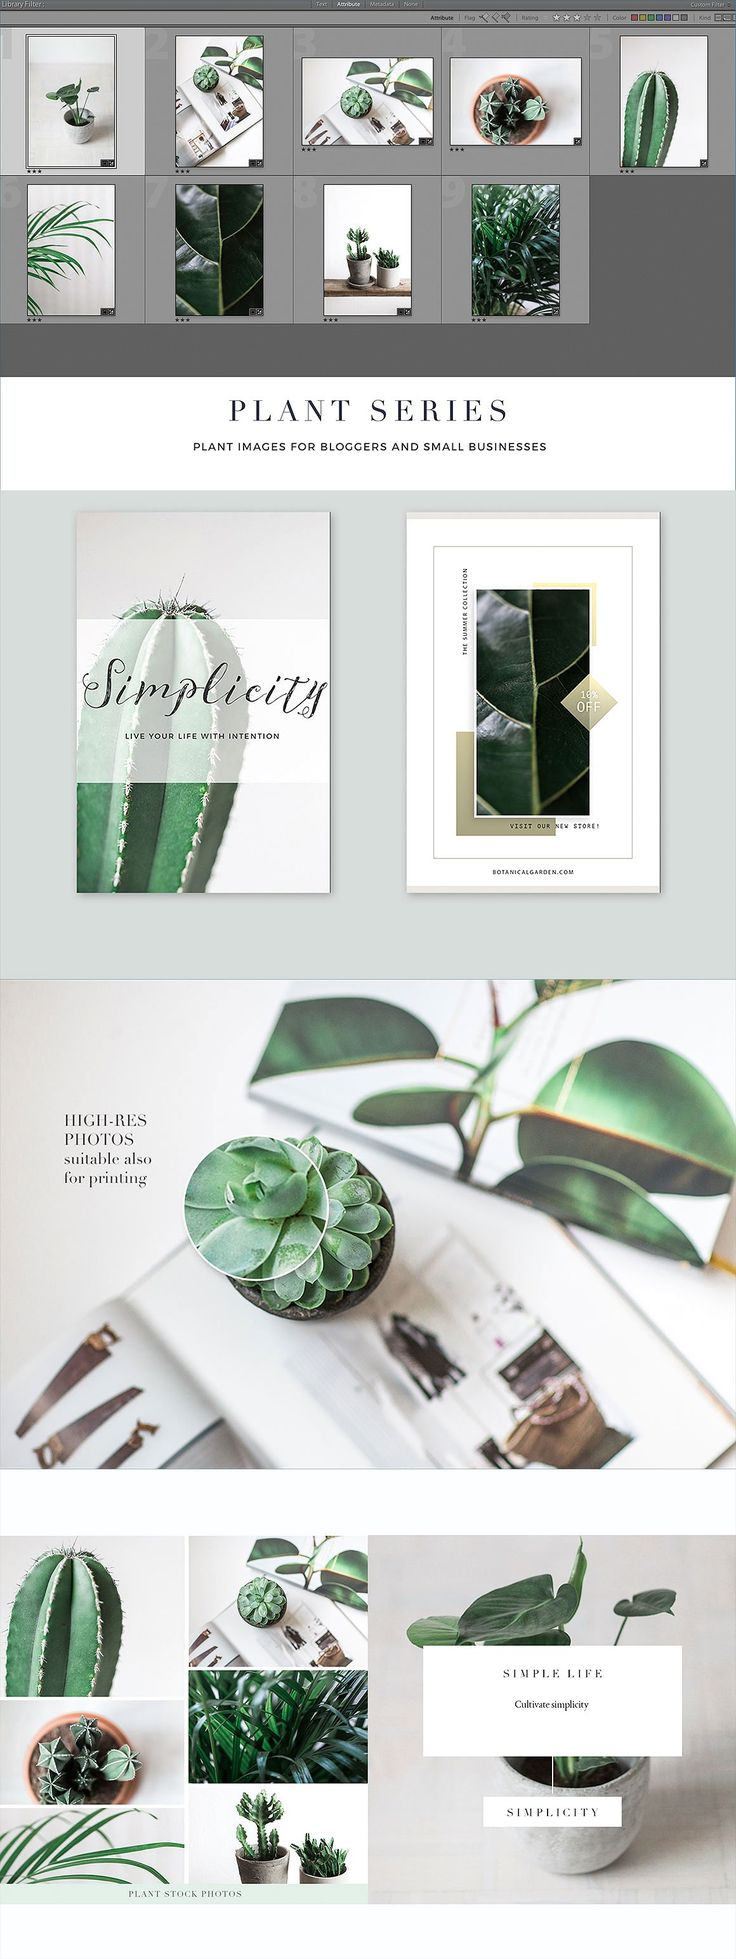 Plant series stock photos by Nellaino on @creativemarket